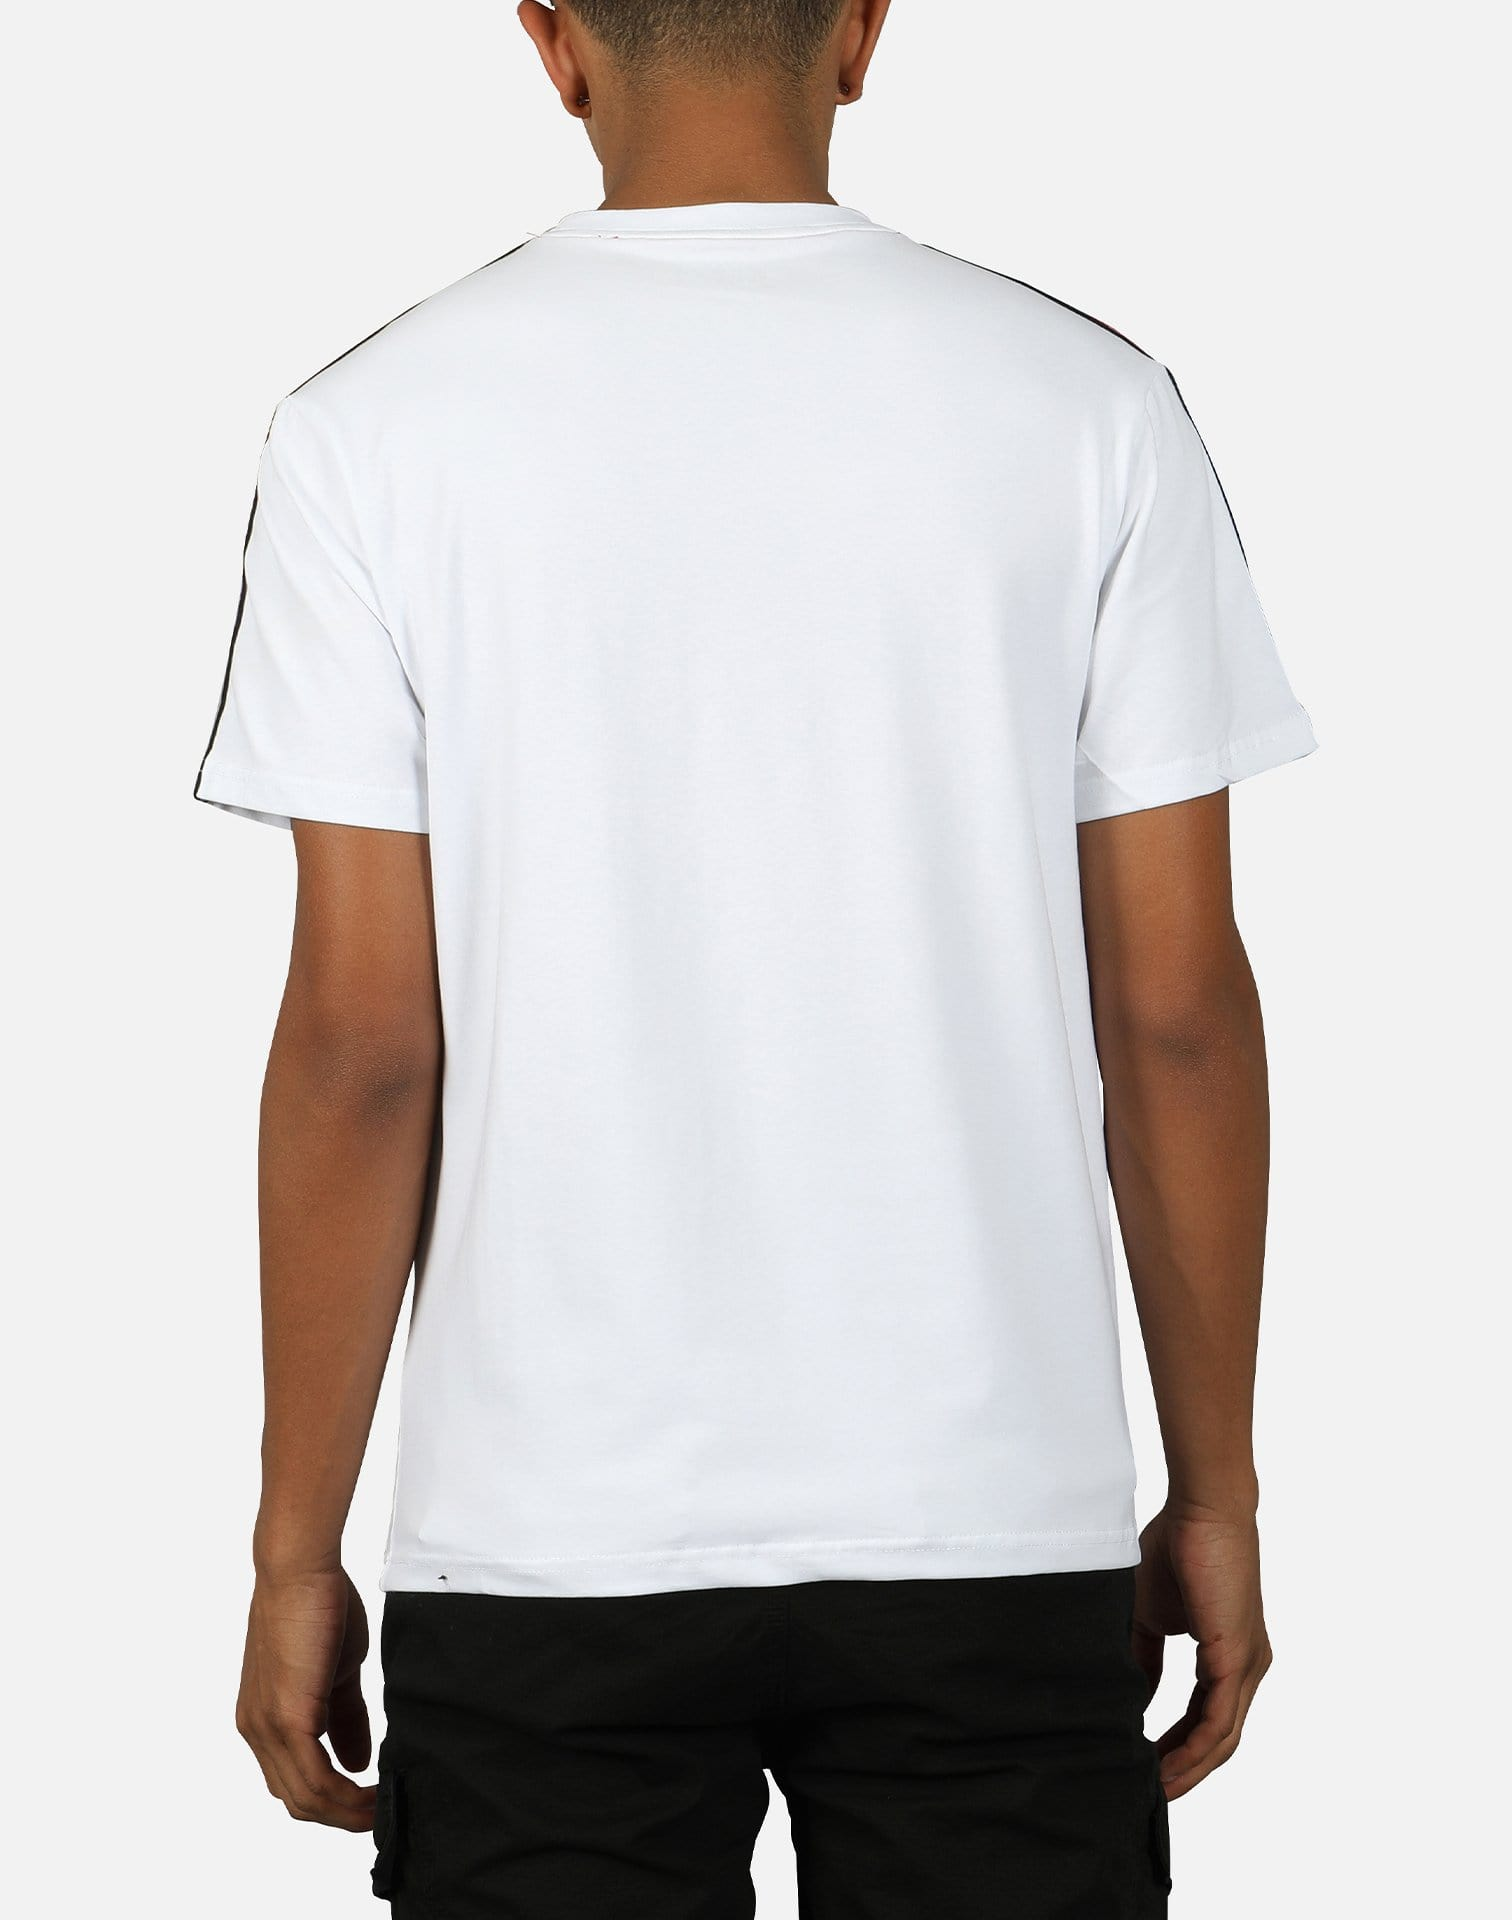 K and S Men's Forever Young Tee